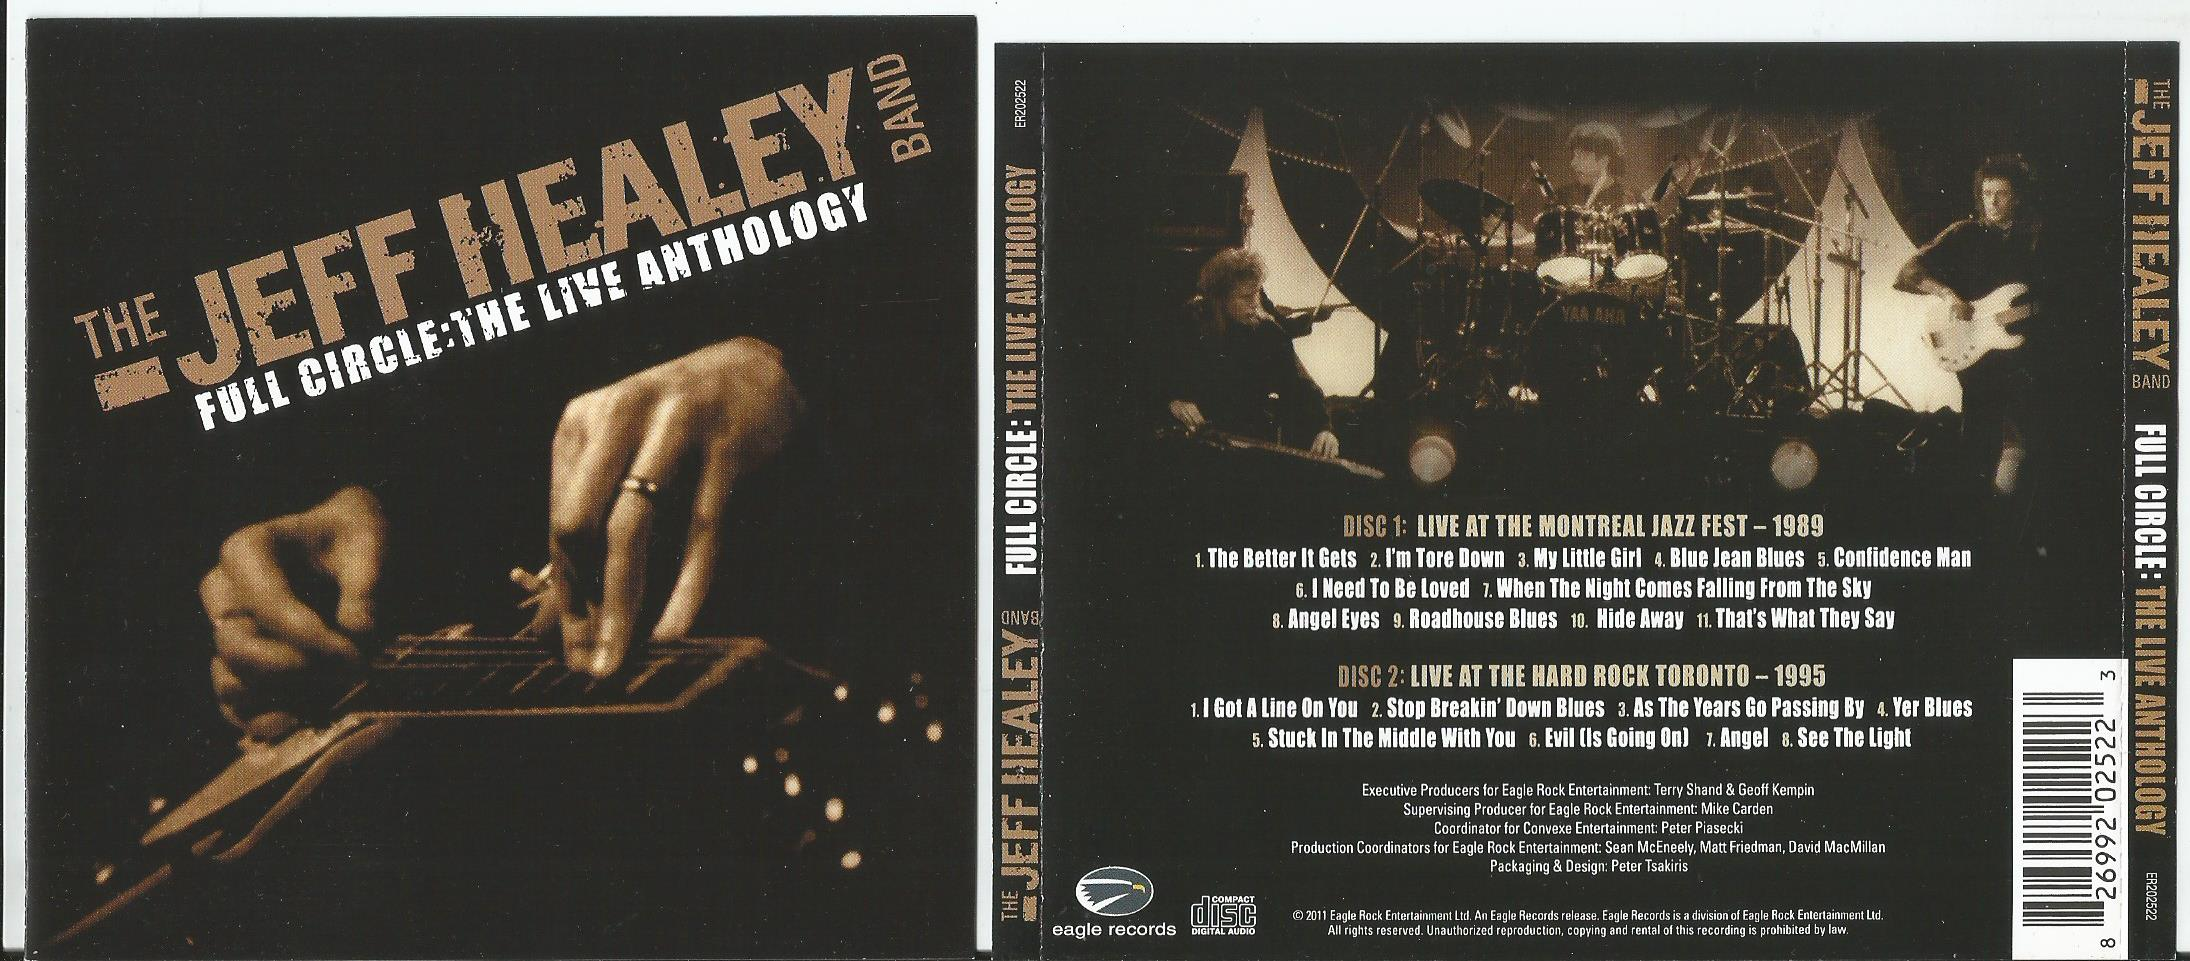 Full circle: the live anthology (3cd & dvd) by Jeff Healey Band, CD